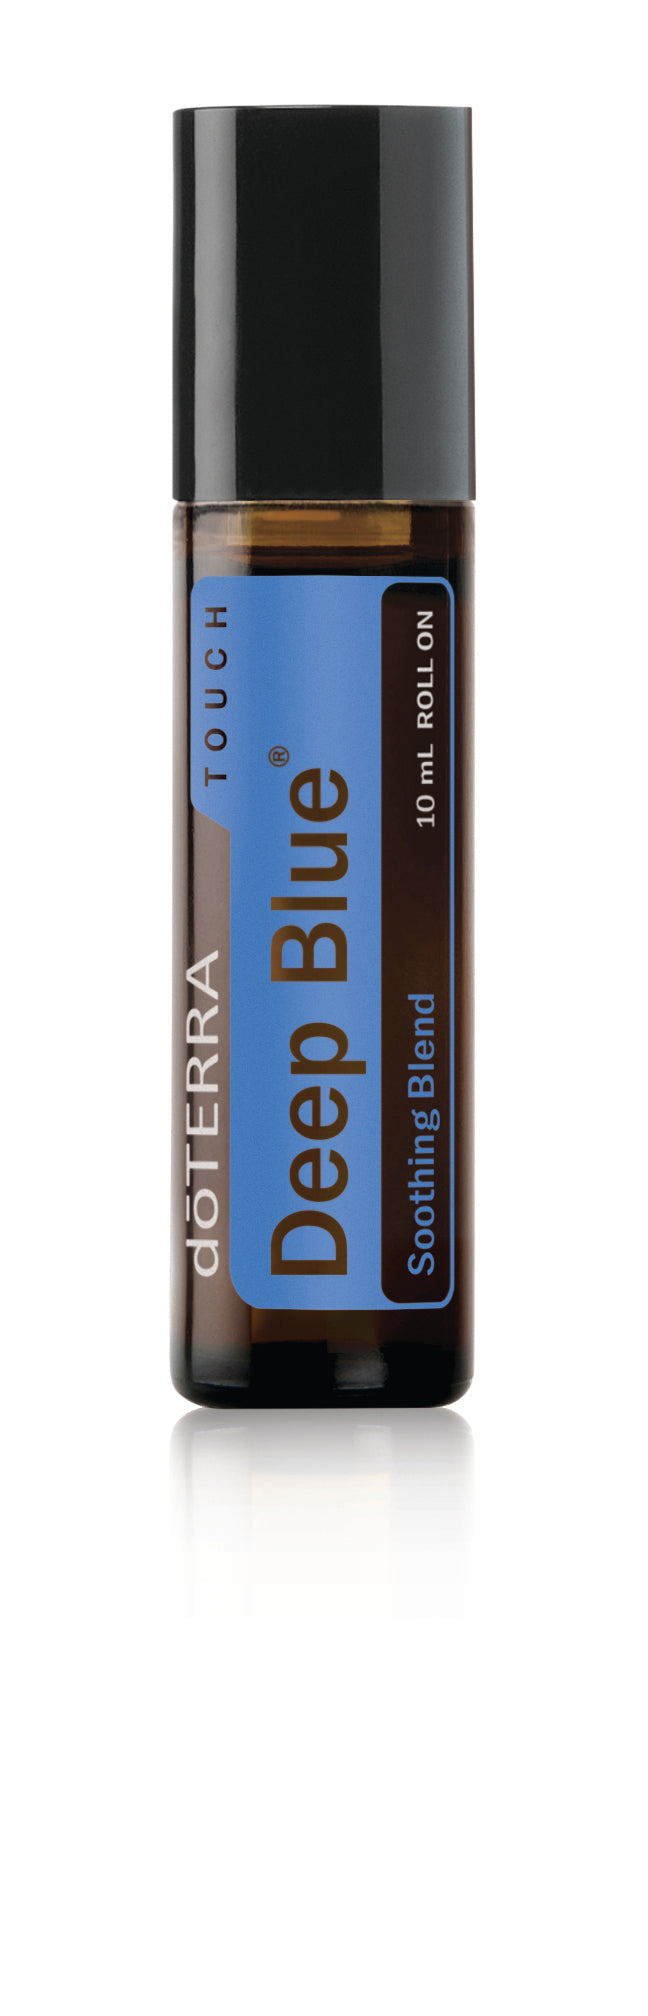 Deep Blue Touch Diluted Oil Blend 10ml